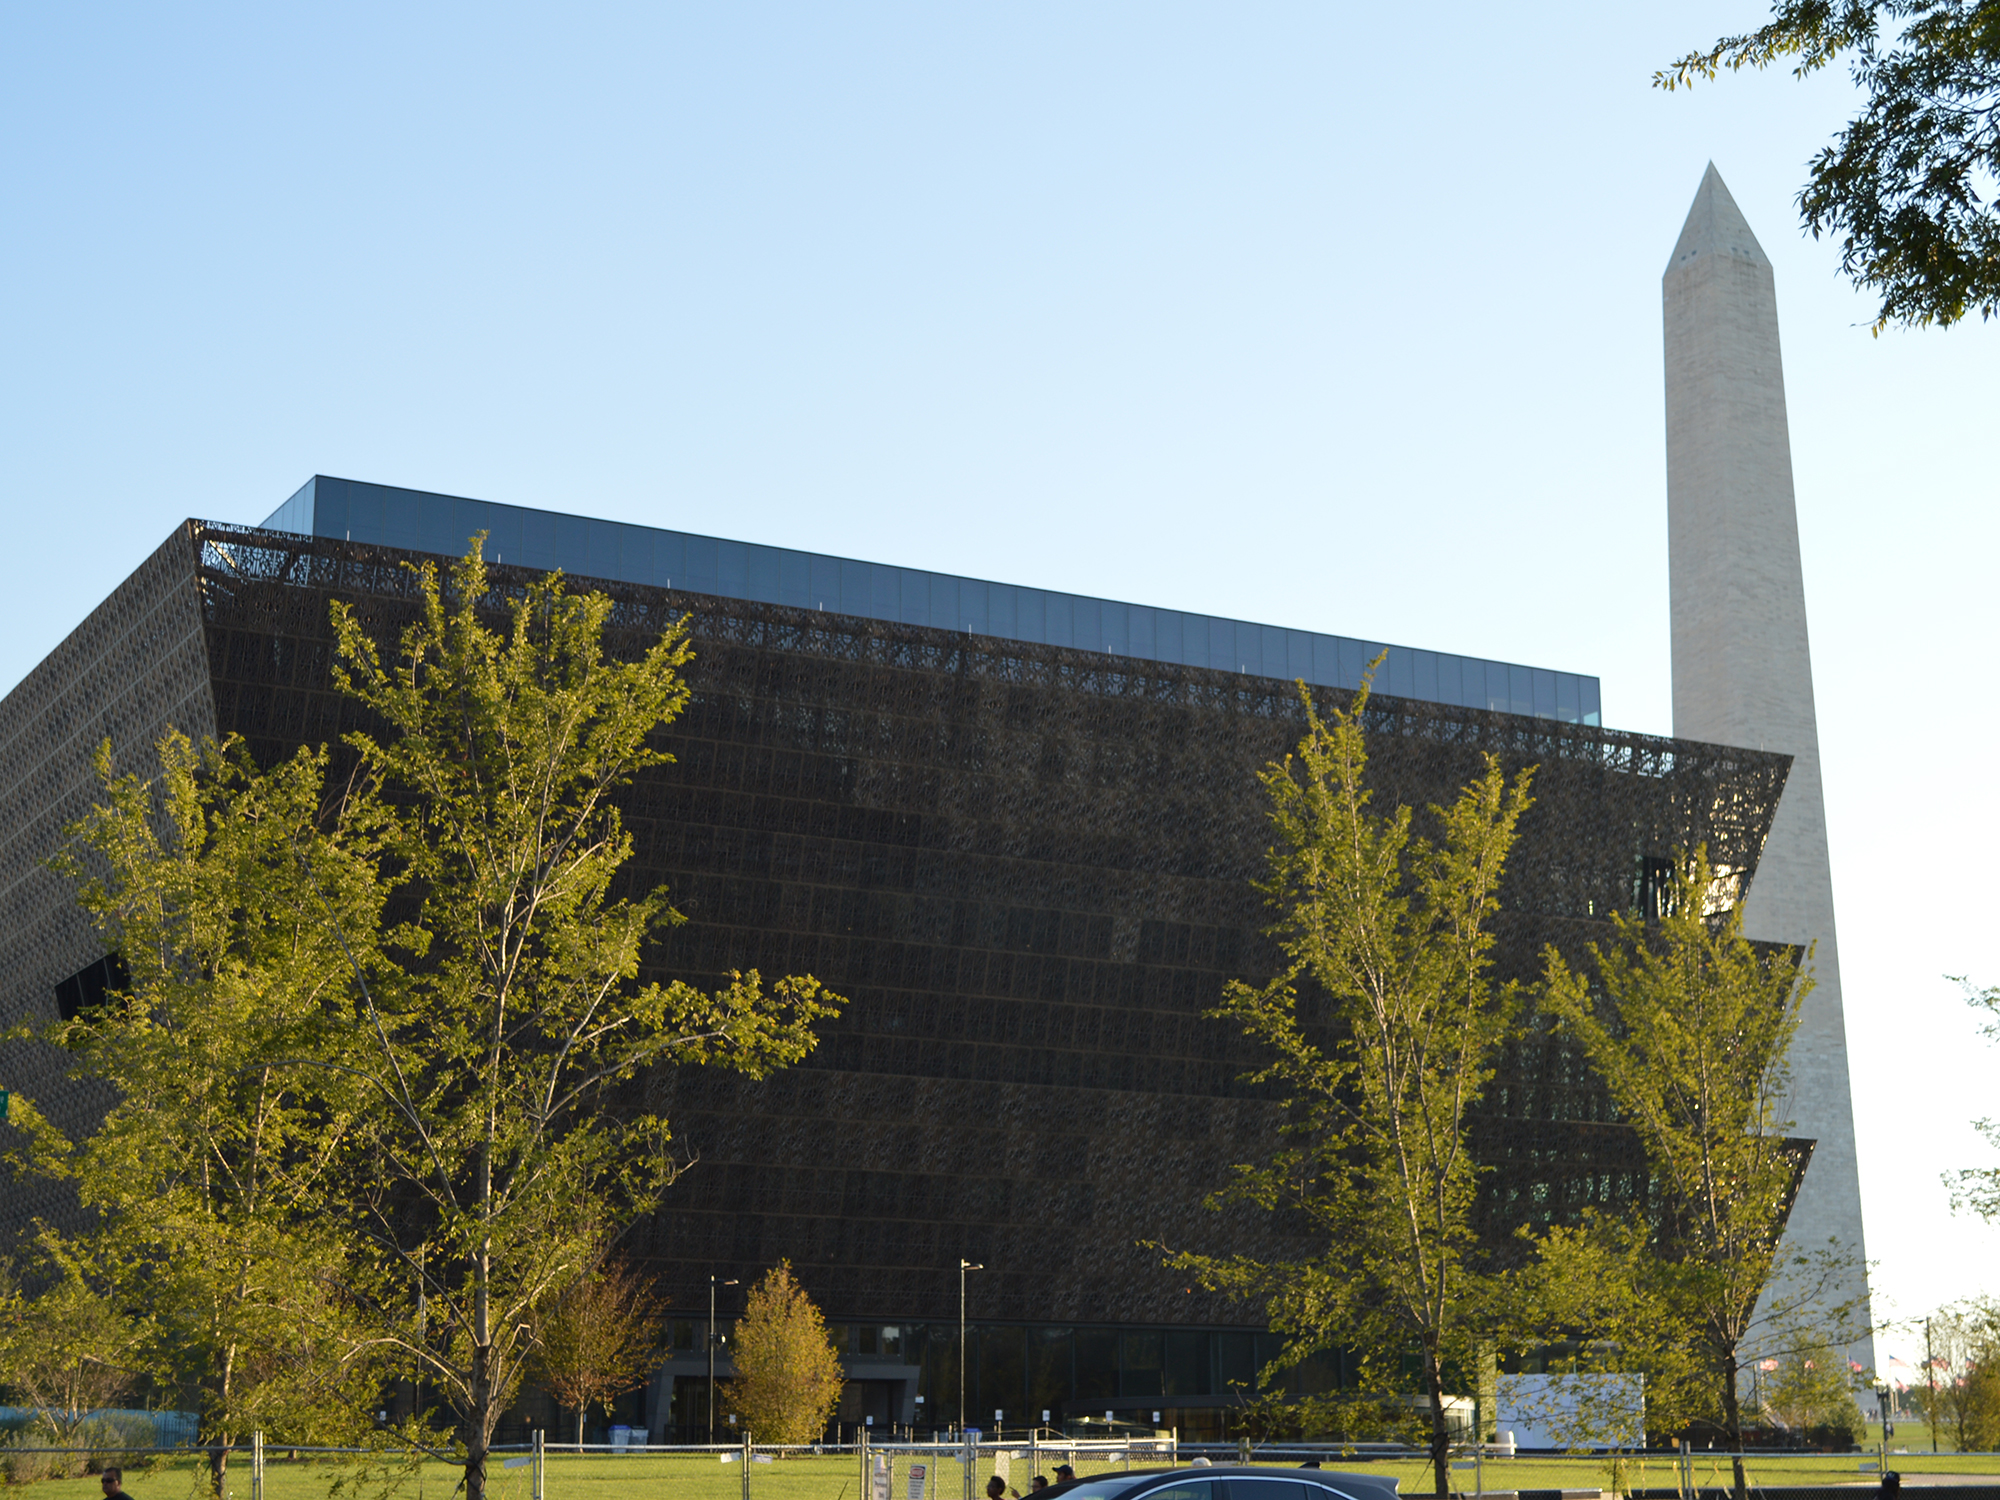 The National Museum of African American History and Culture and the Washington Monument. Photograph by Ryan Weisser.